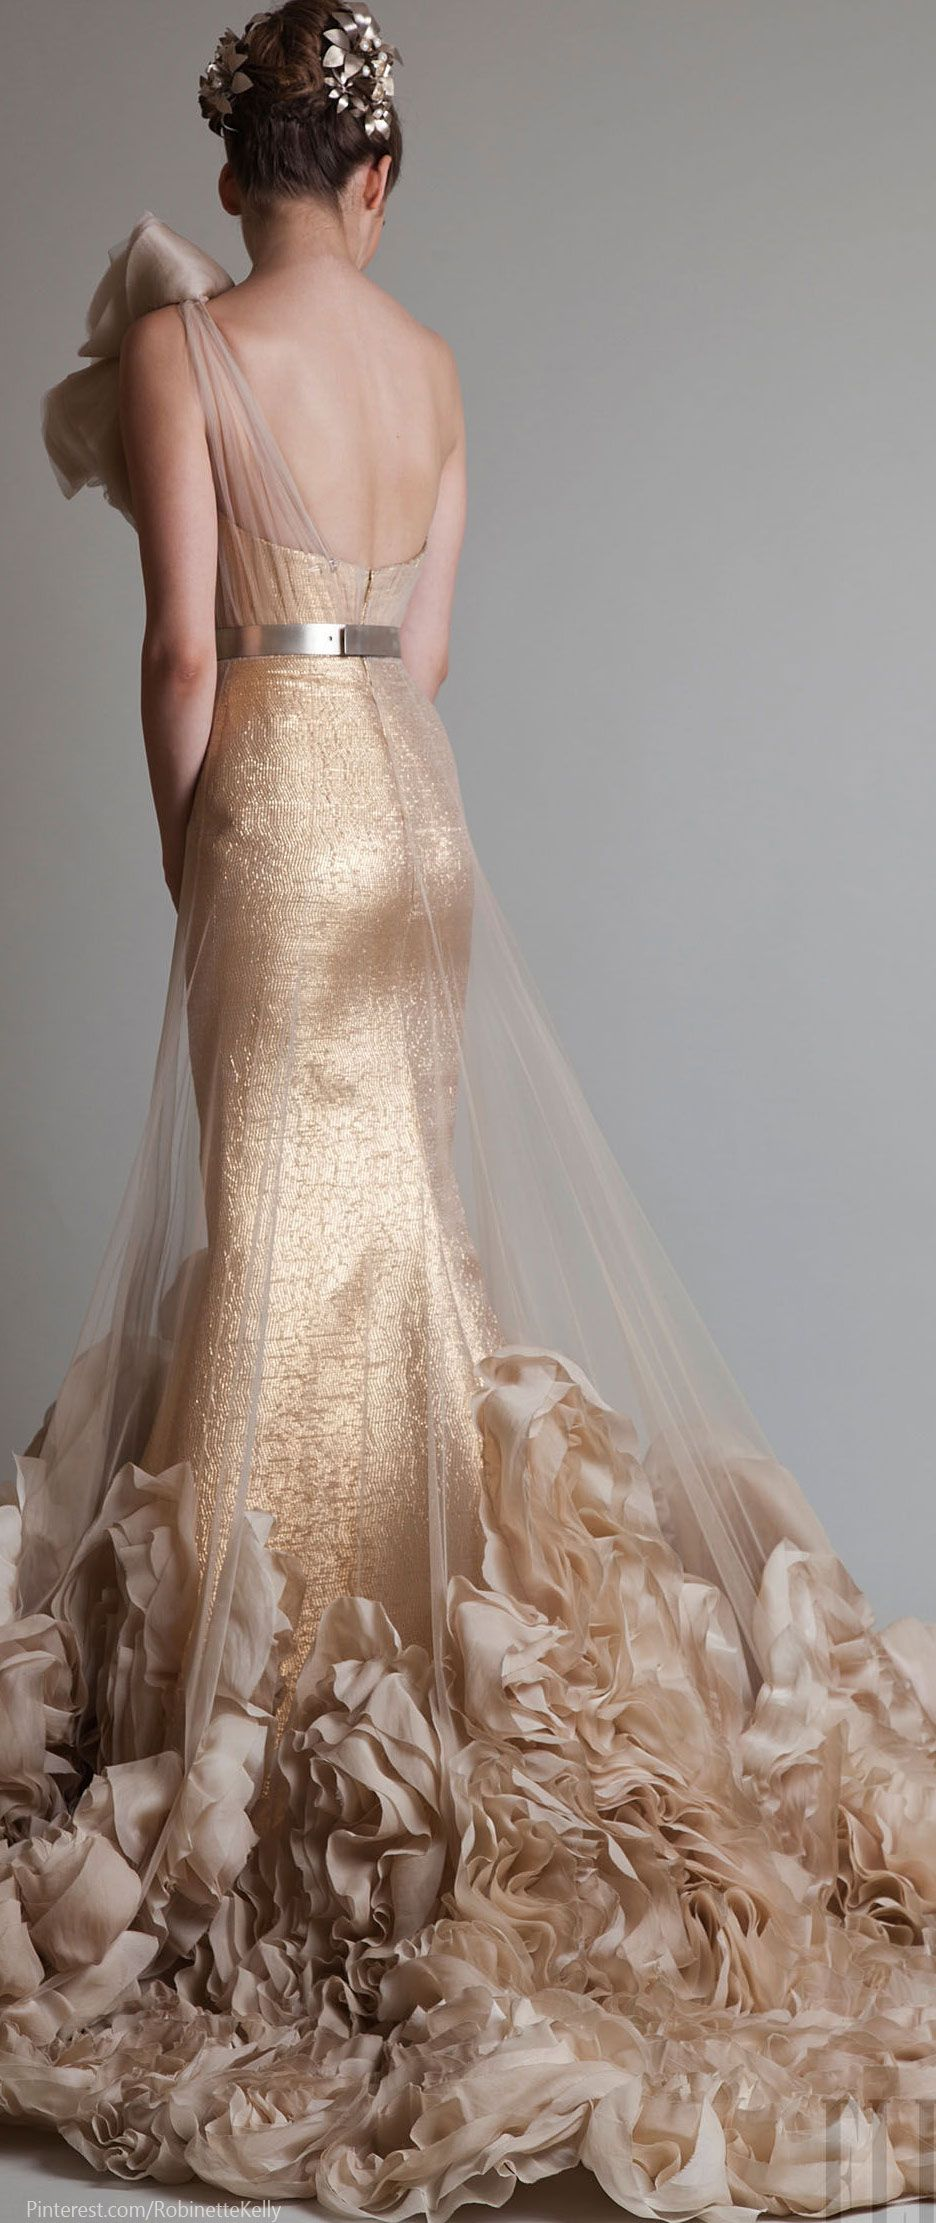 Krikor jabotian couture metallic gold wedding color board